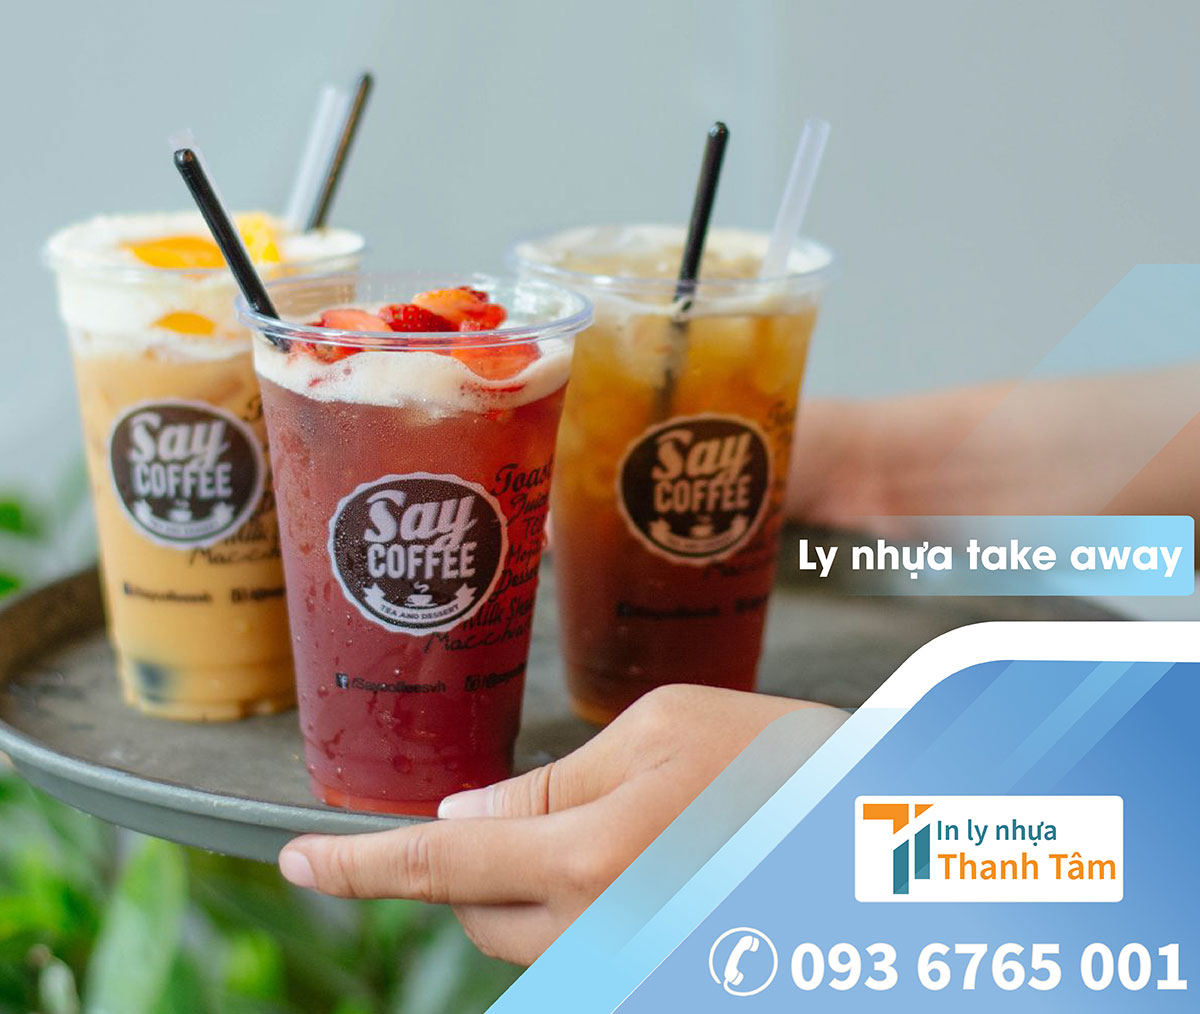 in-ly-nhua-cafe-take-way